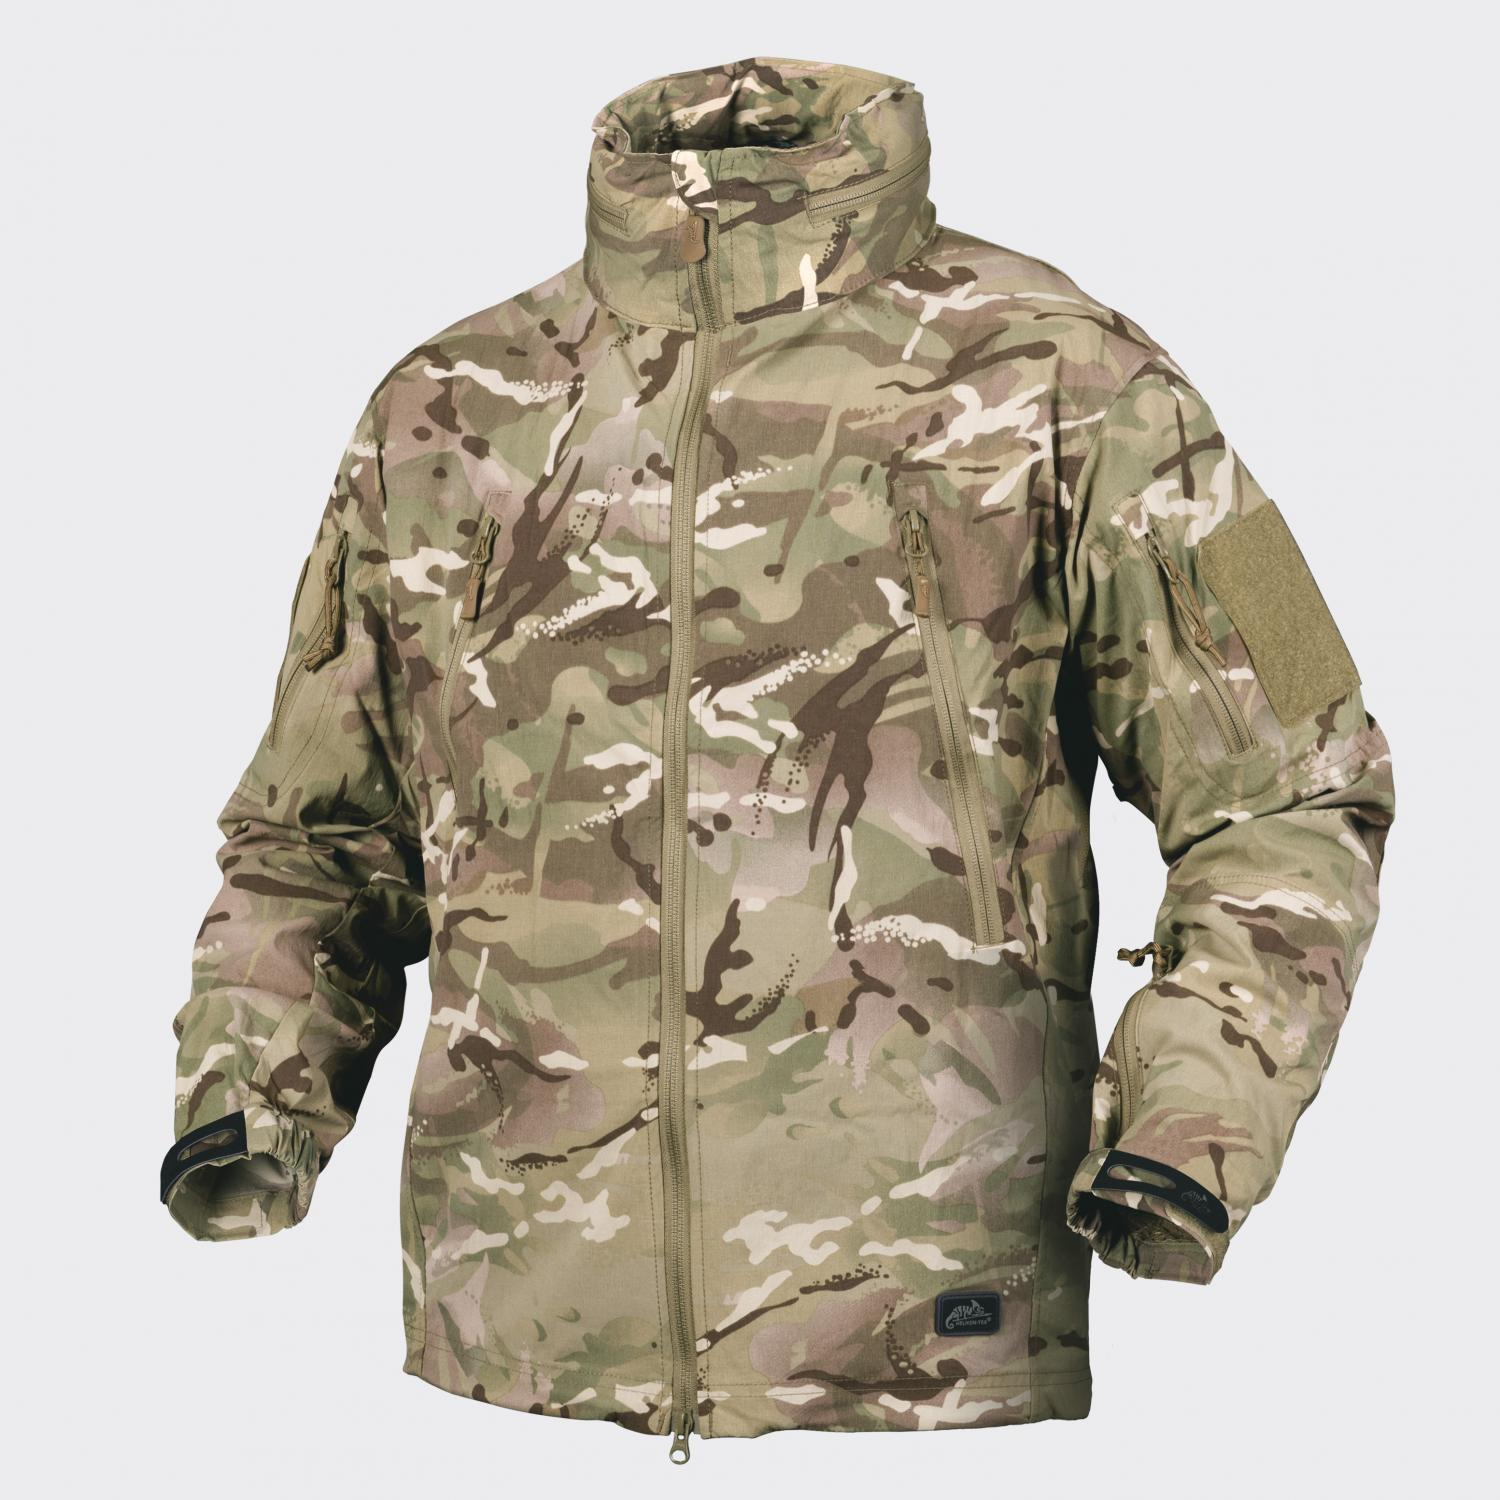 TROOPER - SoftShell MP Camo